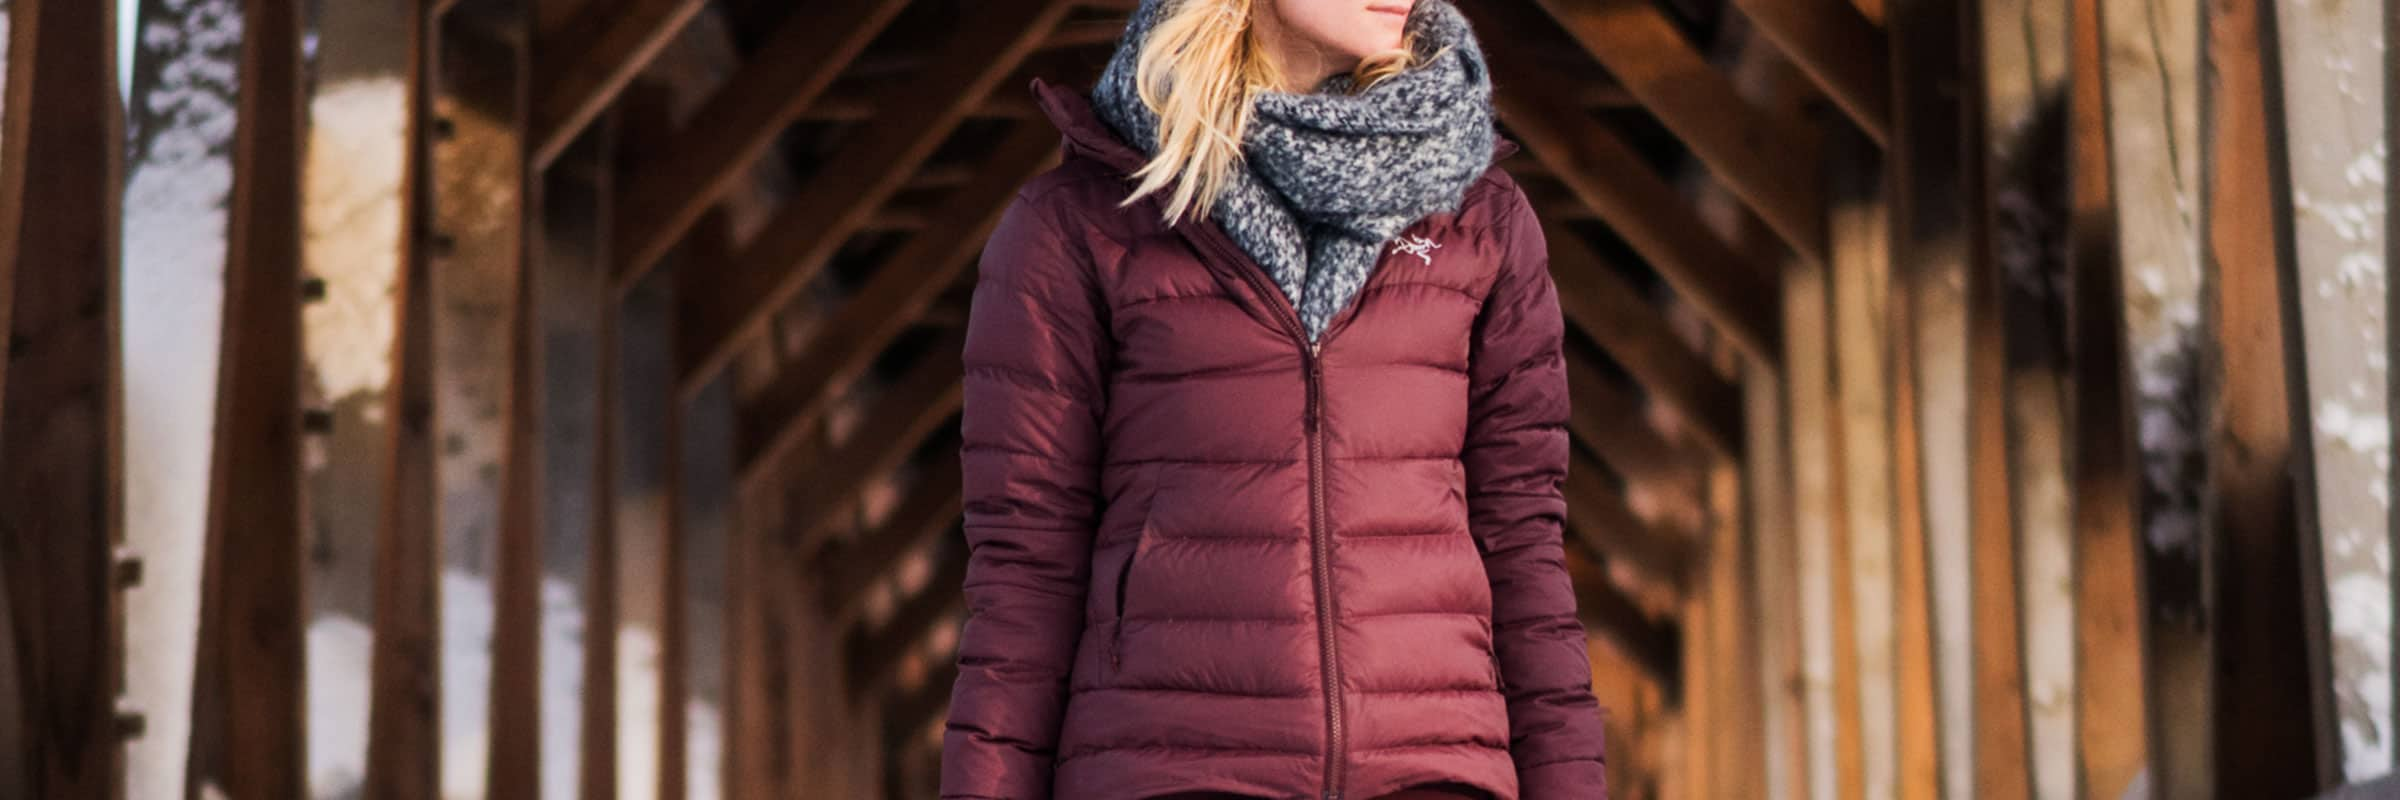 Arc'teryx, Ski & Snowboard. Arc'teryx Women's Thorium AR Hoody Reviewed